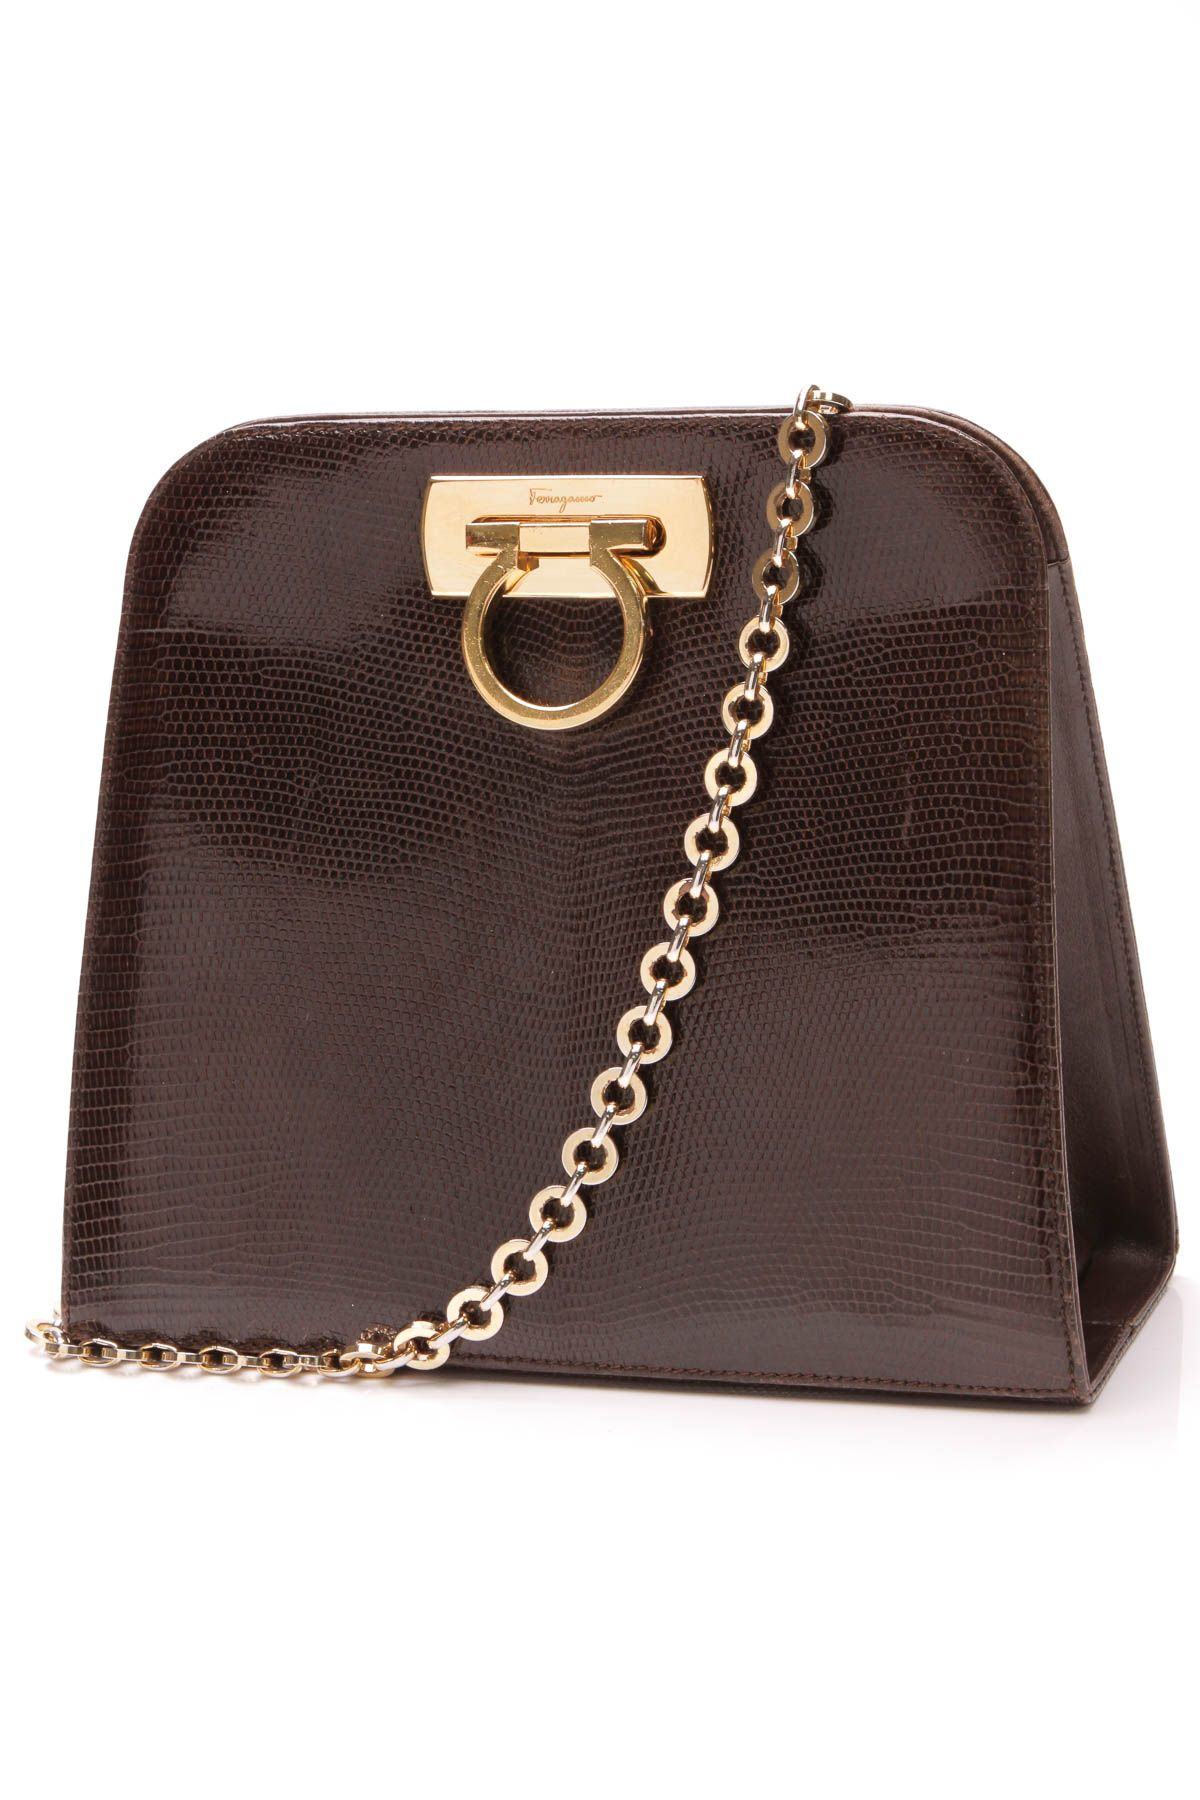 ede2954b641c Salvatore Ferragamo Vintage Gancini Bag - Brown Lizard